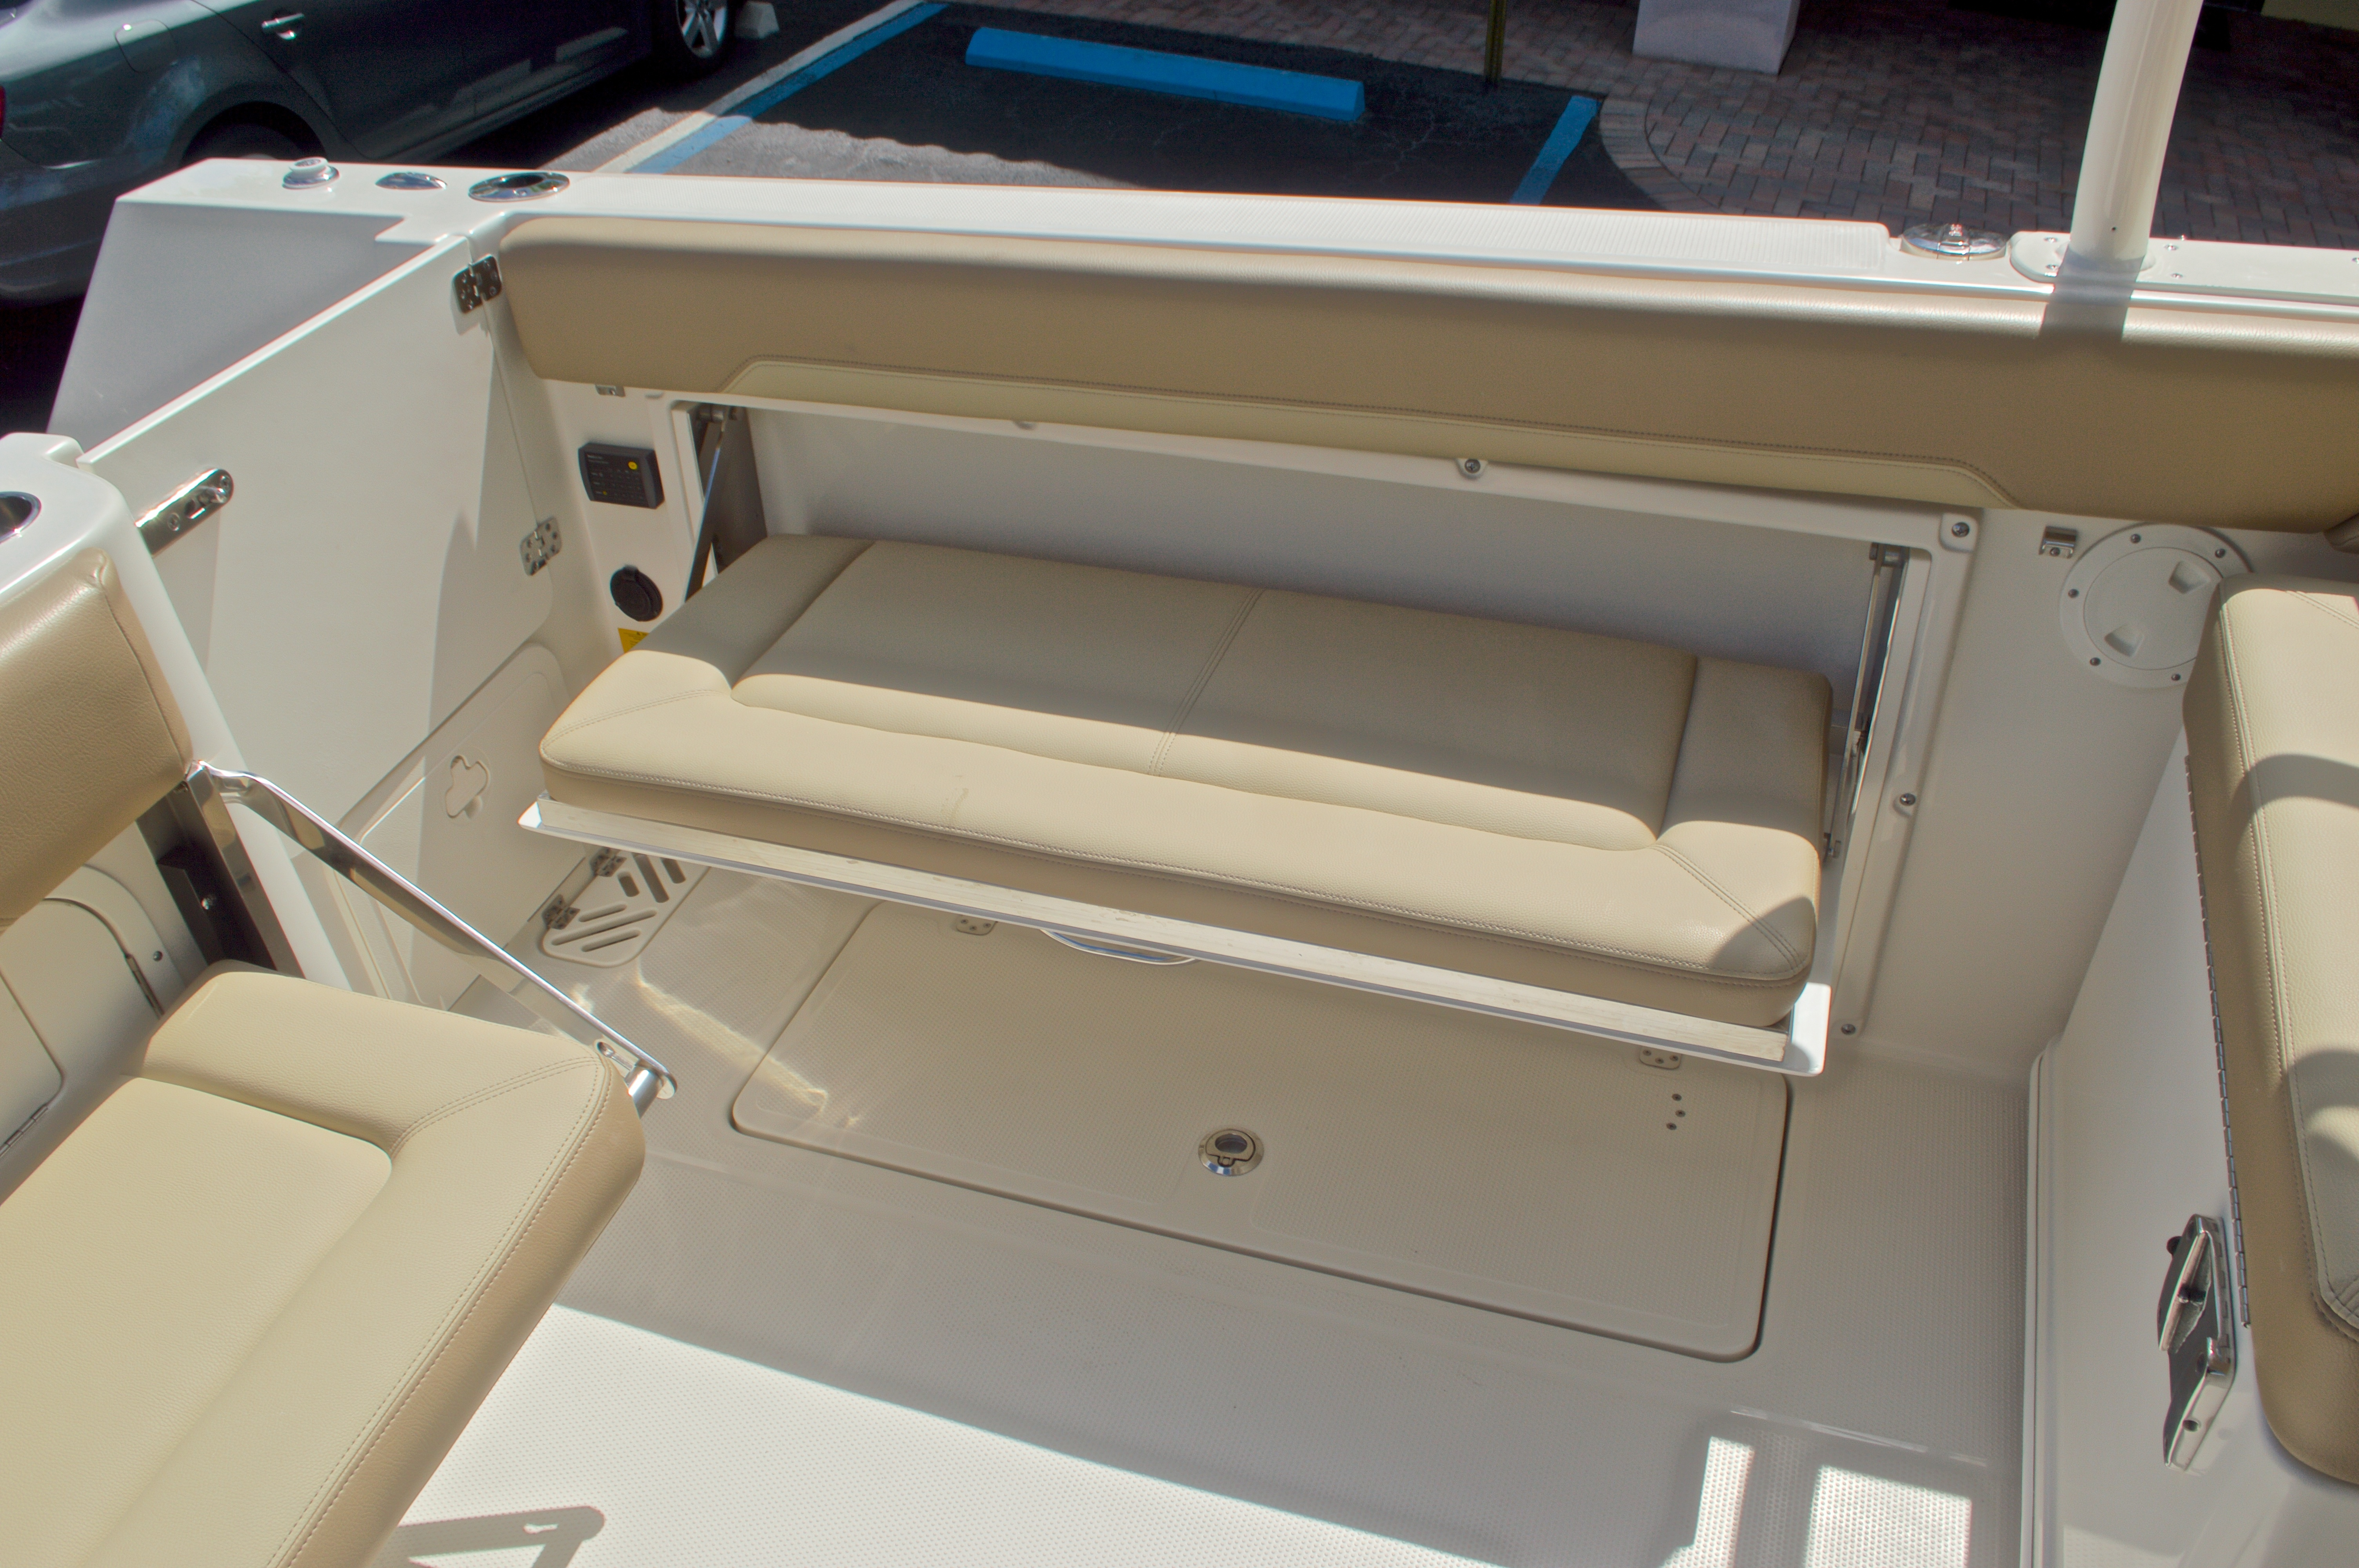 Thumbnail 24 for New 2017 Sailfish 275 Dual Console boat for sale in West Palm Beach, FL